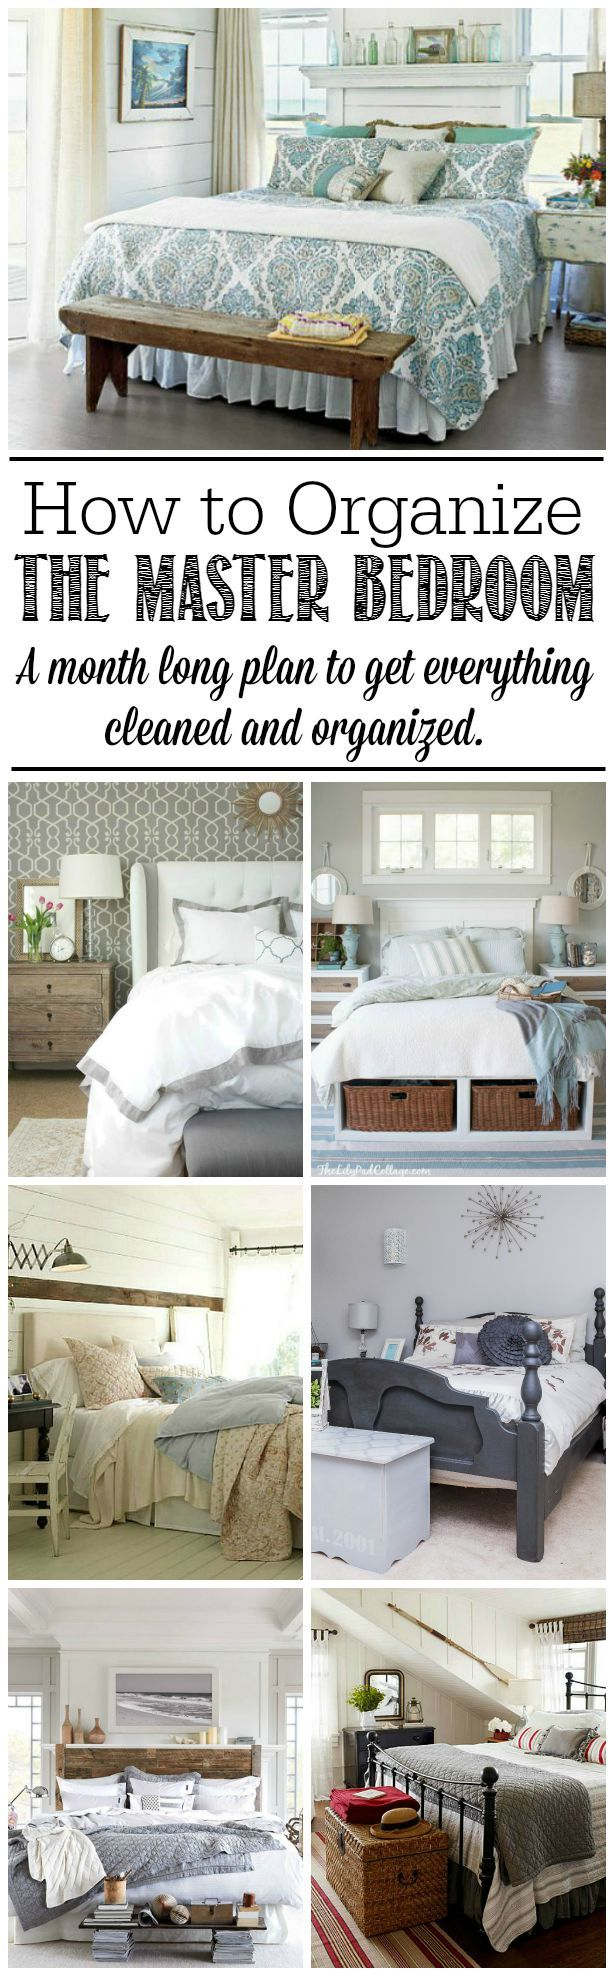 Organization For Bedrooms 17 Best Ideas About Bedroom Cleaning On Pinterest Cleaning Room